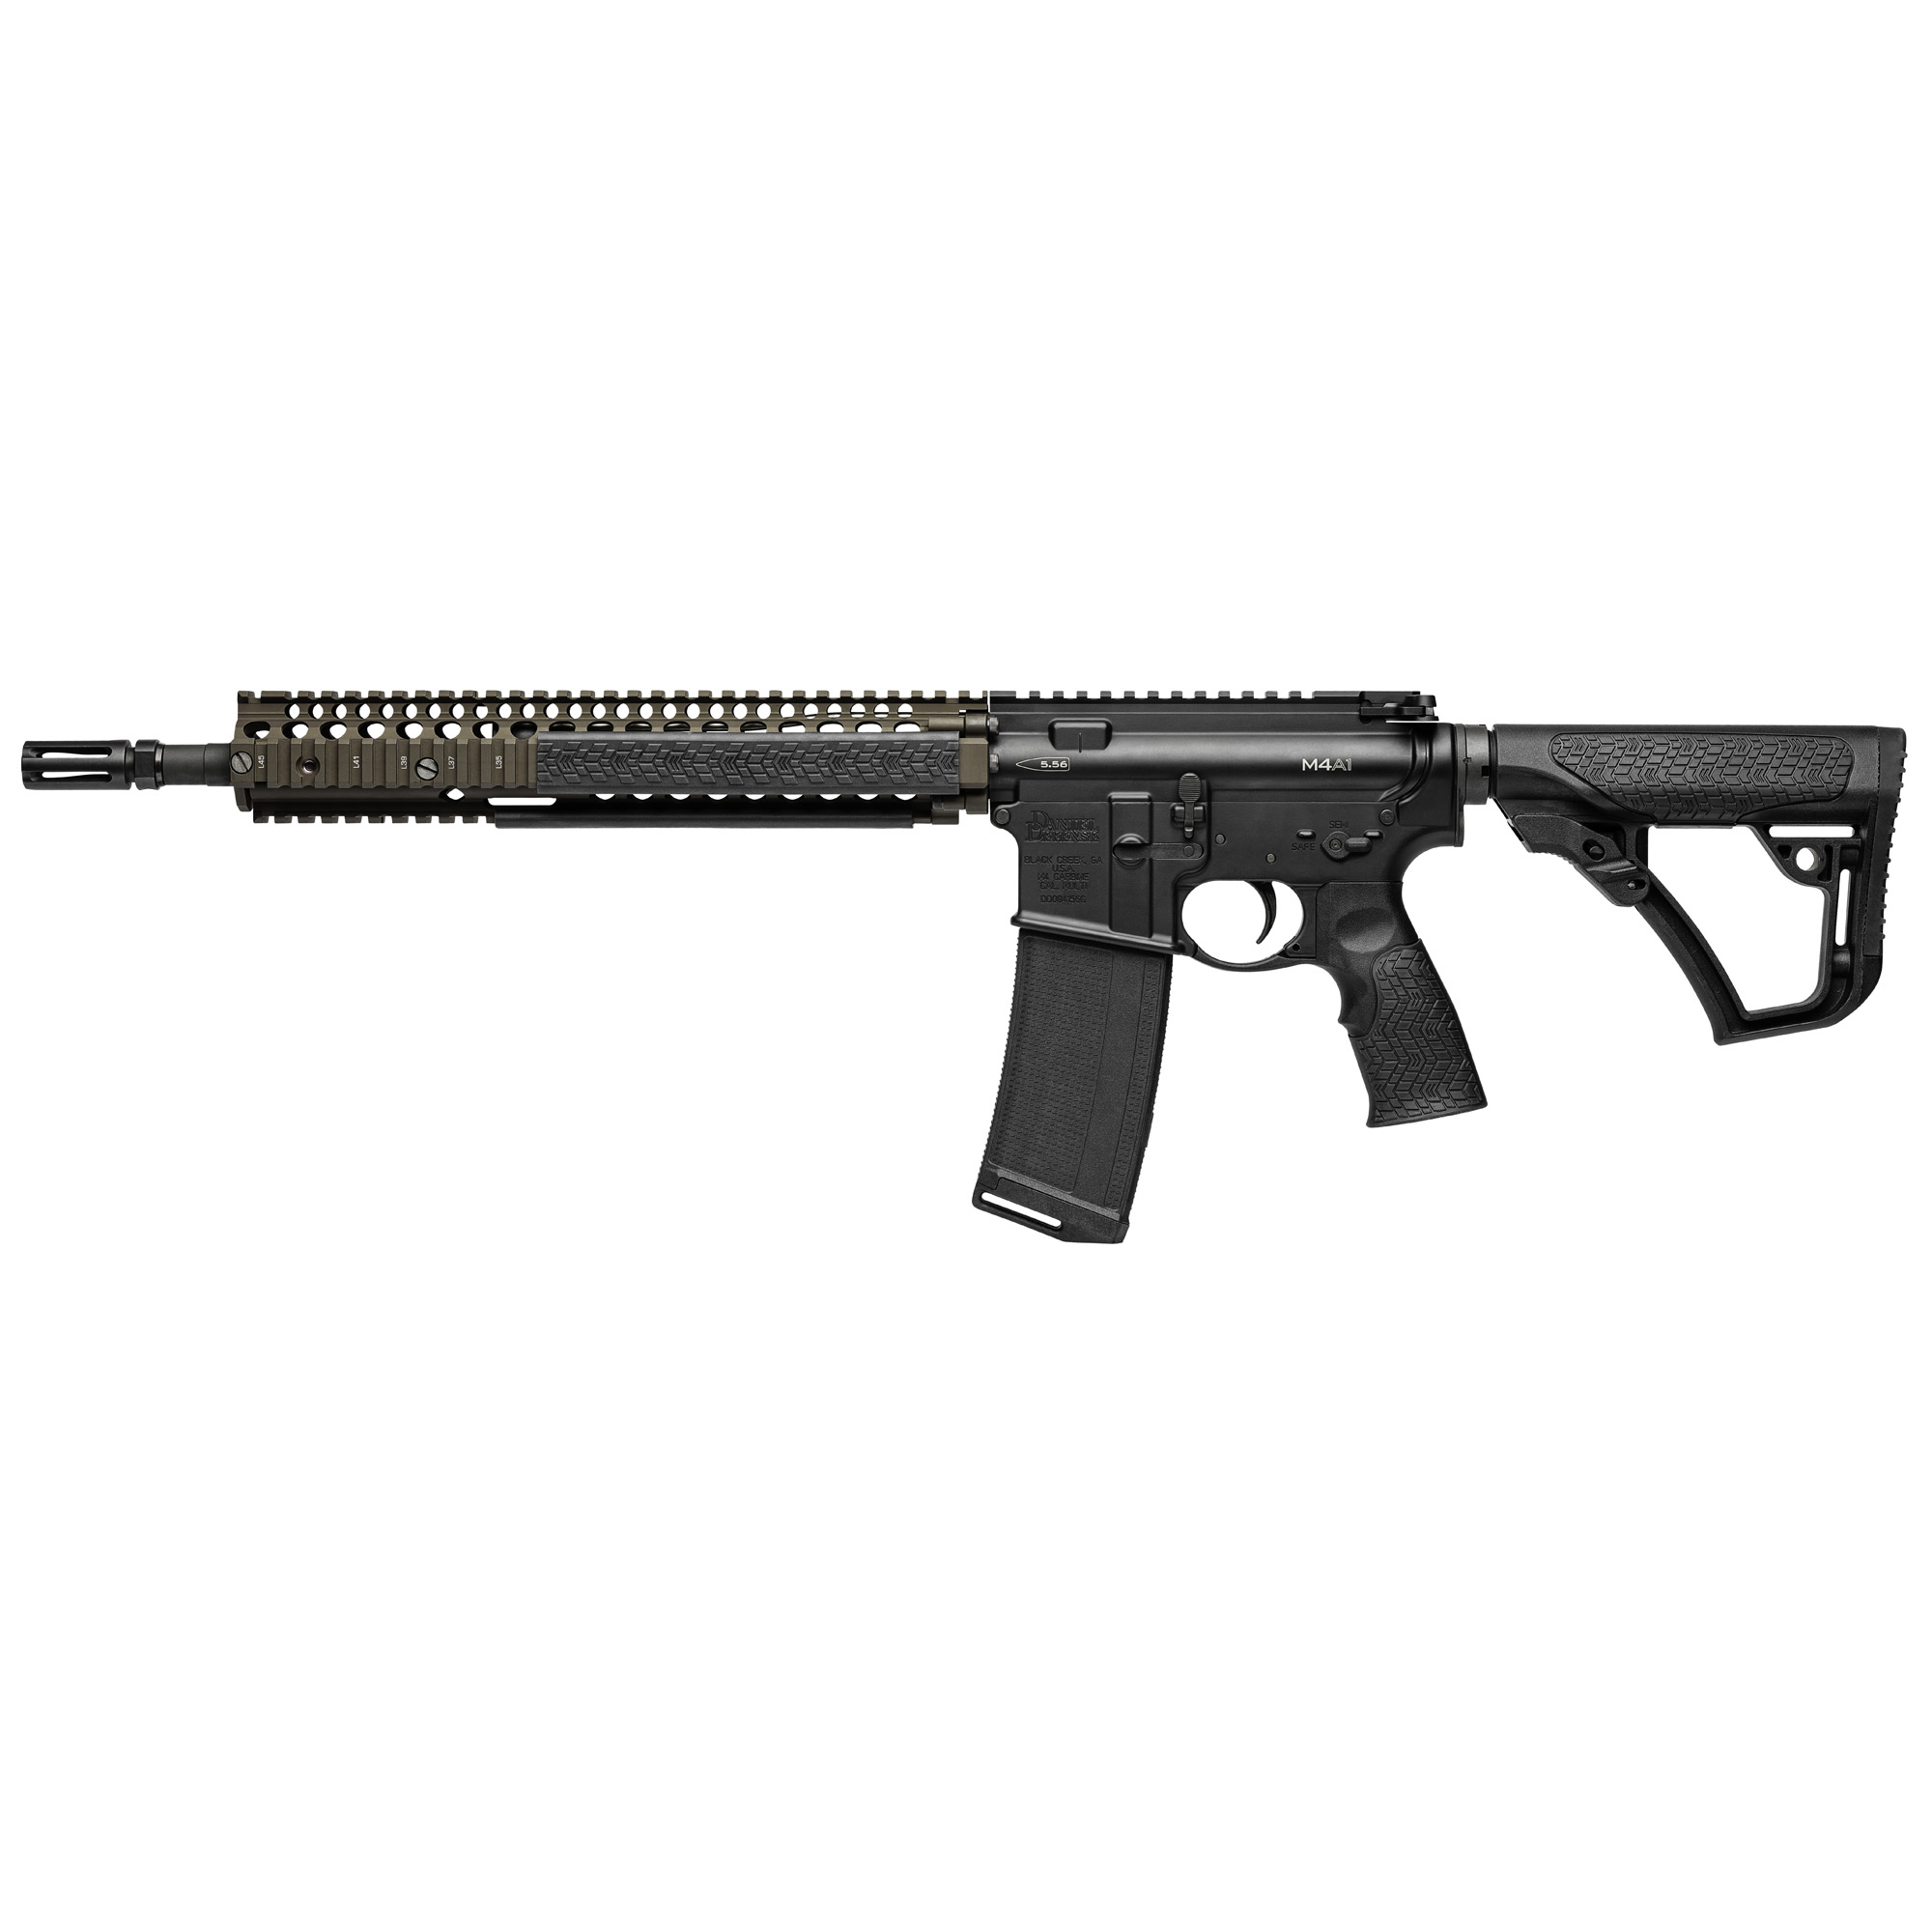 "The Daniel Defense M4A1 features the M4A1 RIS II"" which has been in use by US Special Operations Command (SOCOM) for the SOPMOD II Weapons System since 2005. The M4A1 features a 14.5"" Cold Hammer Forged M4 Profile barrel with a permanently attached Daniel Defense Flash Suppressor."